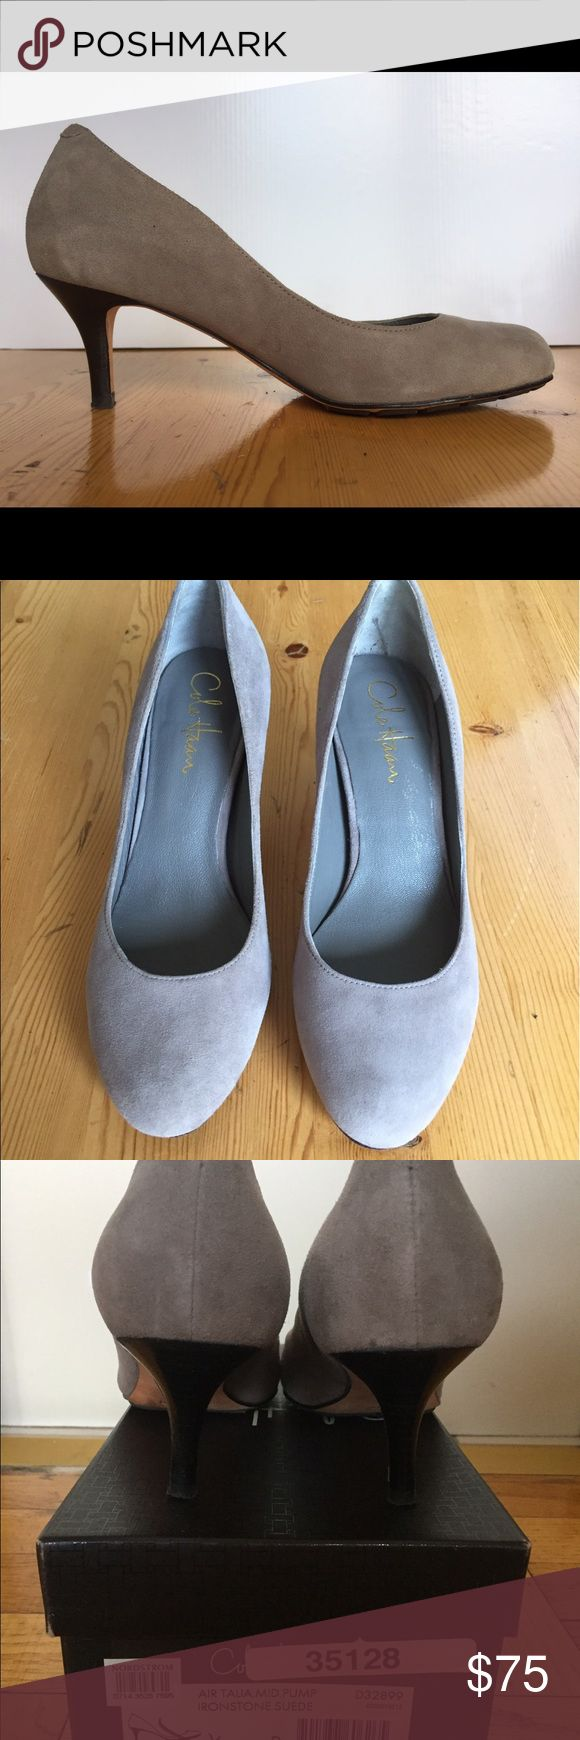 Cole Haan Talia Gray Suede Nike Air Heel Size 6 2 1/2 in. Cole Haan mid-heel pump with Nike Air cushioning technology and rubber sole, super comfortable for both work and evening.  Pretty gray suede in great condition, like new. Cole Haan Shoes Heels